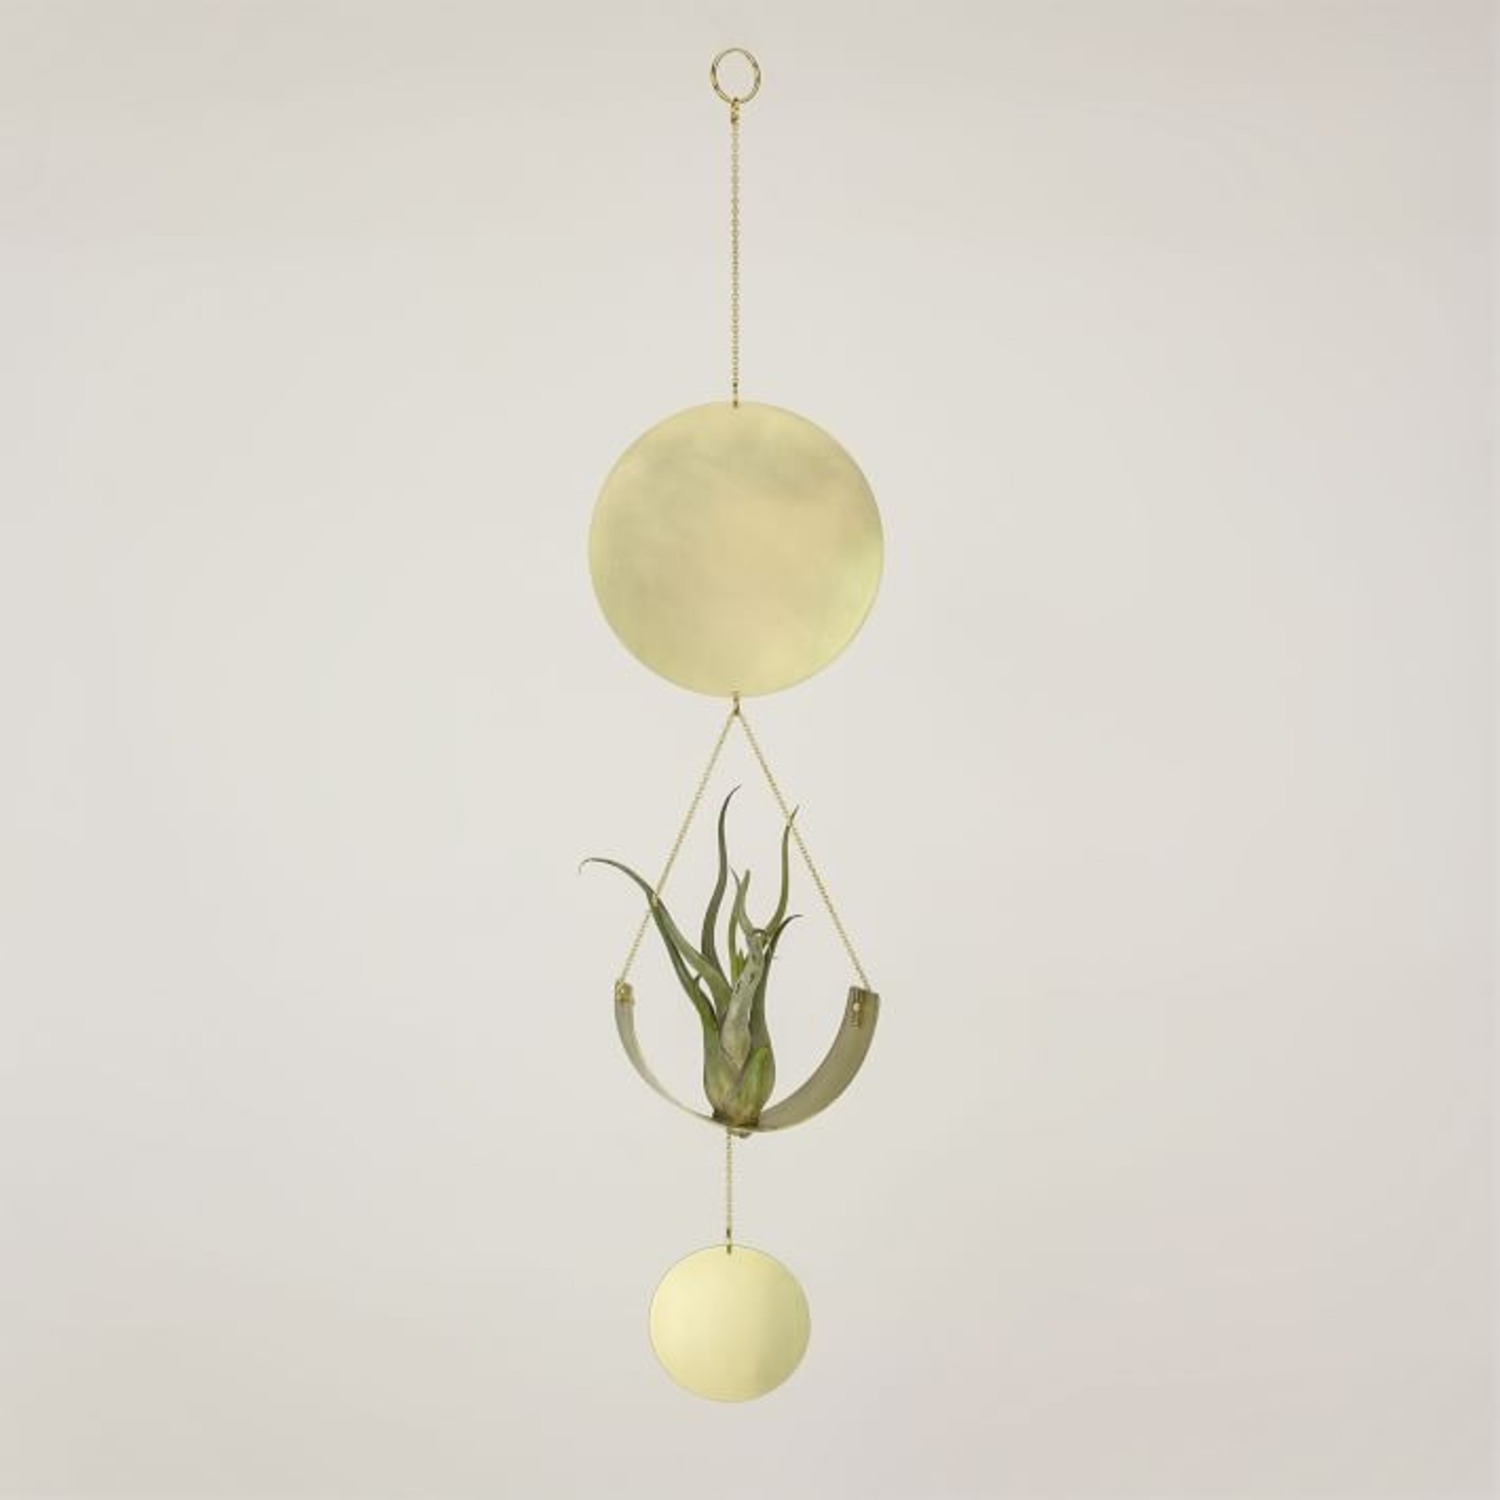 West Elm Airplant Wall Hanging, Brass - image-2